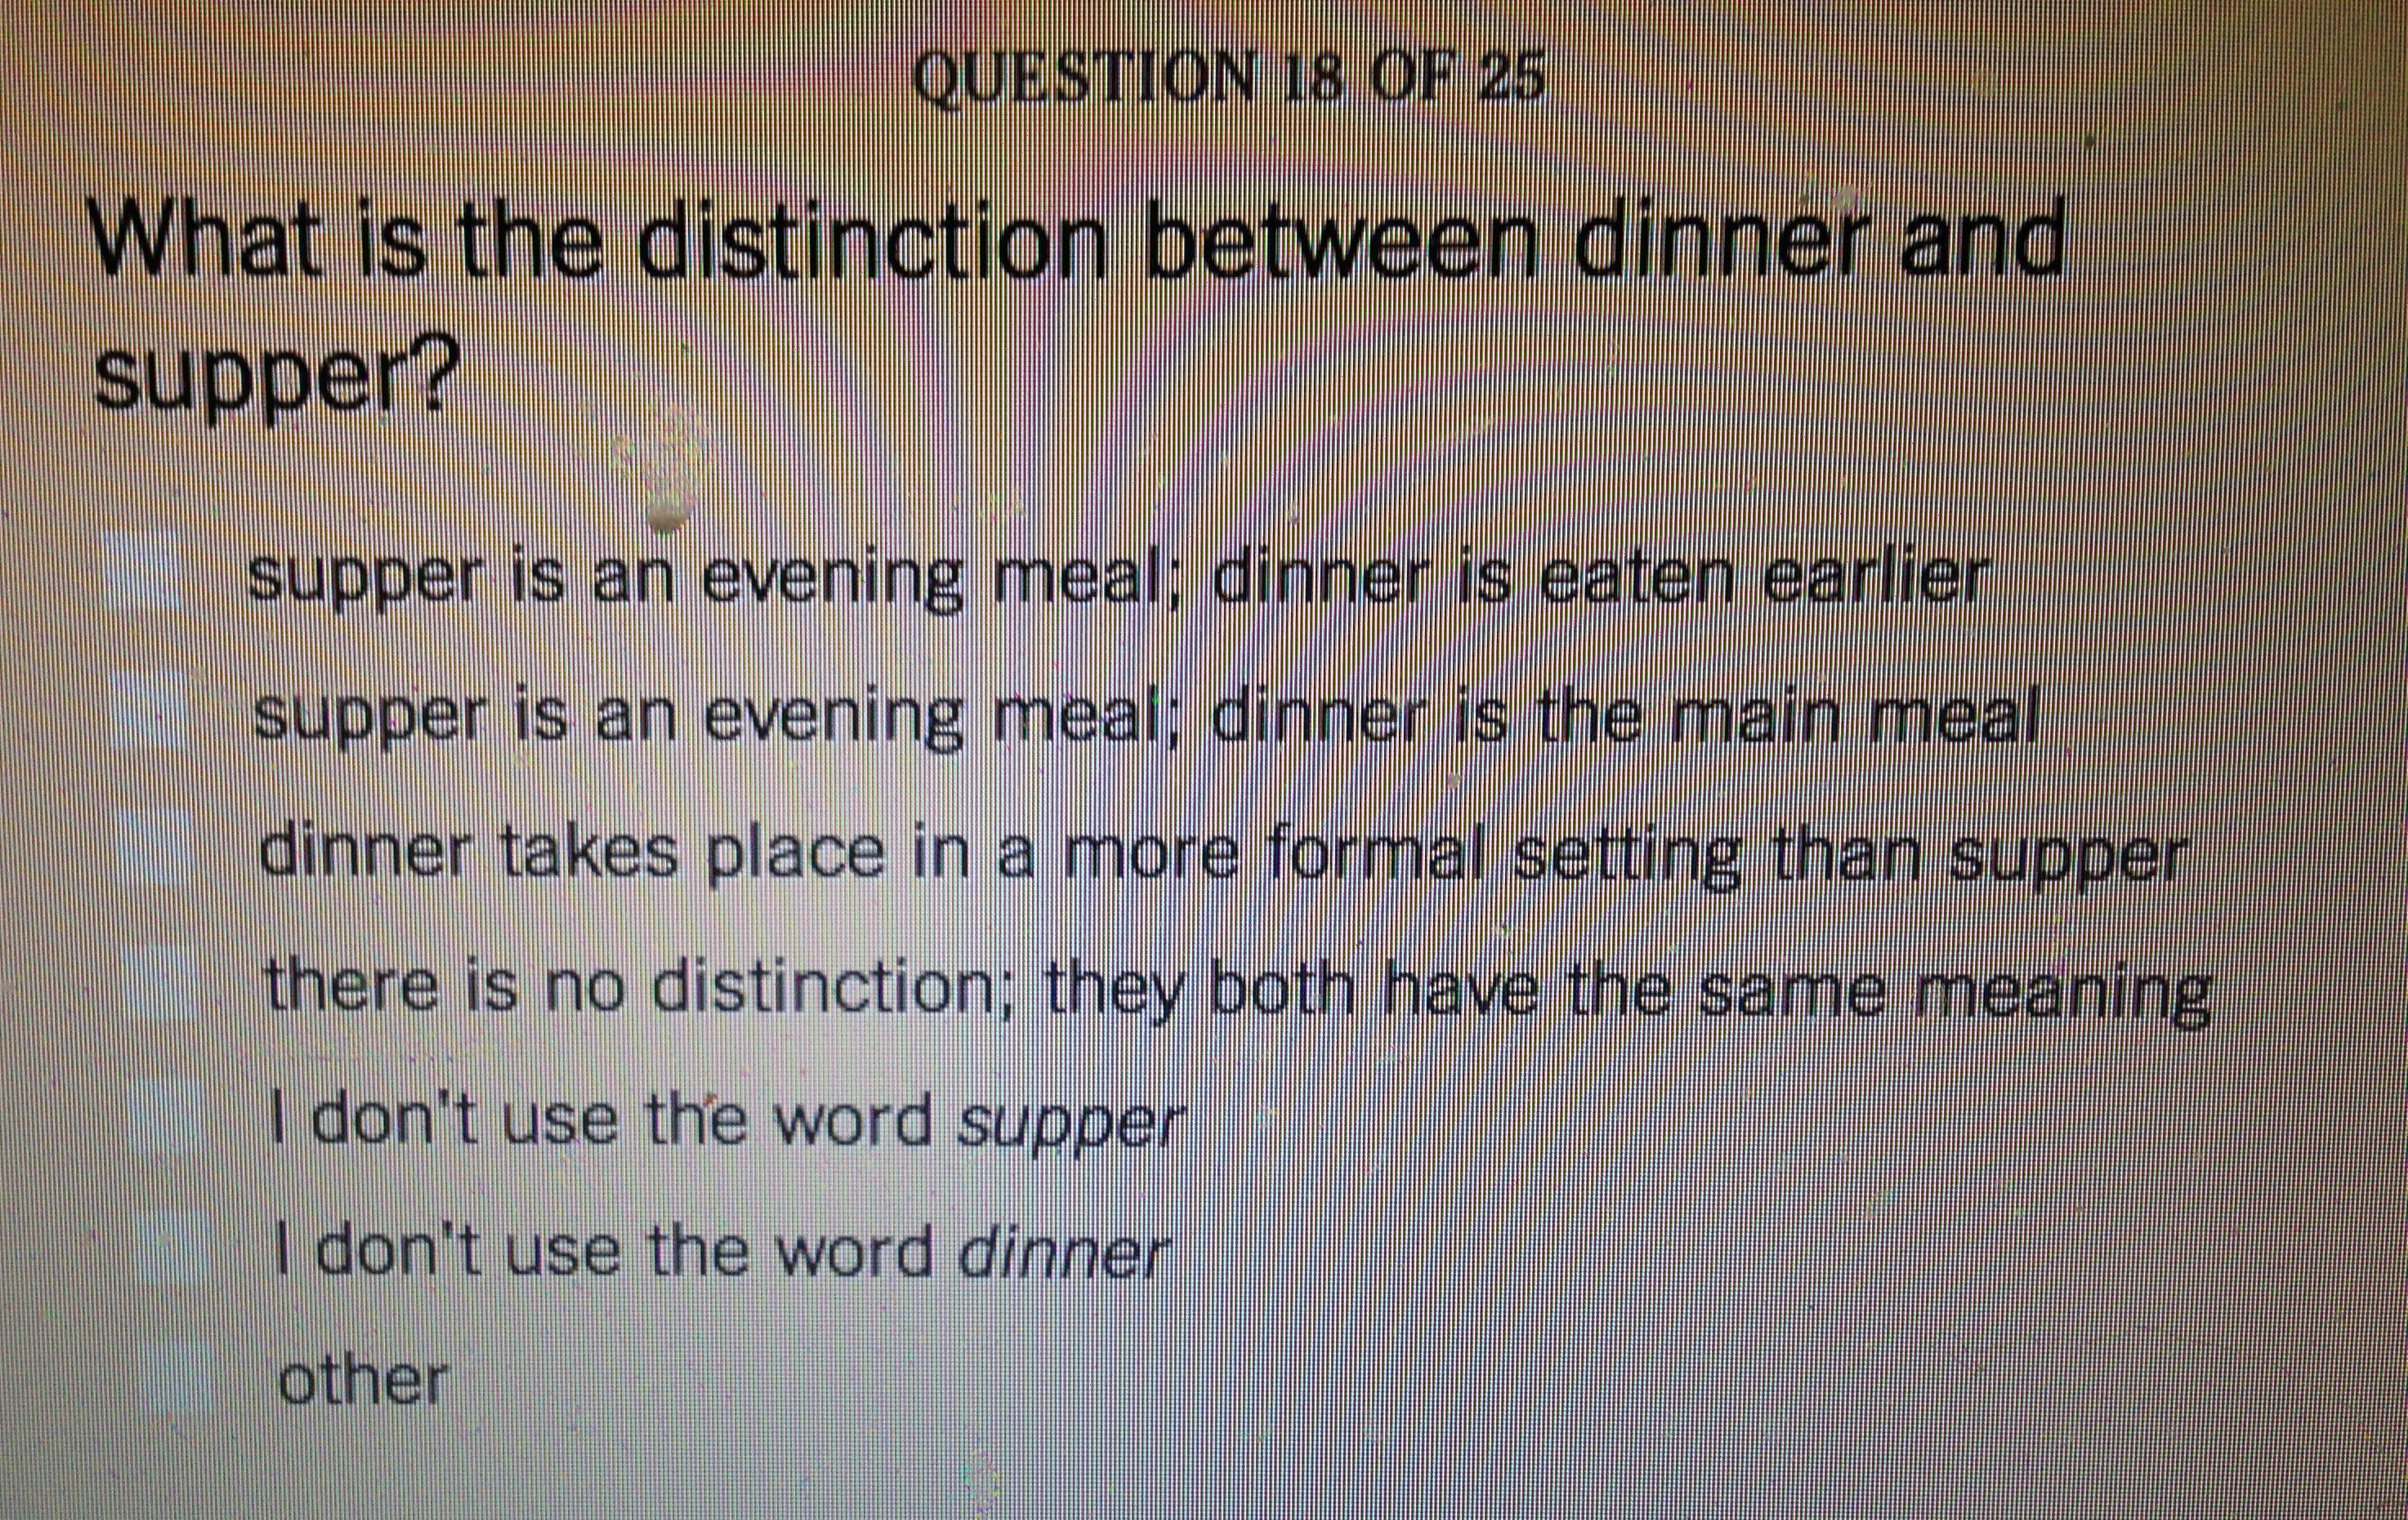 Difference Between Dinner And Supper  Though it looks like dinner it's really our supper